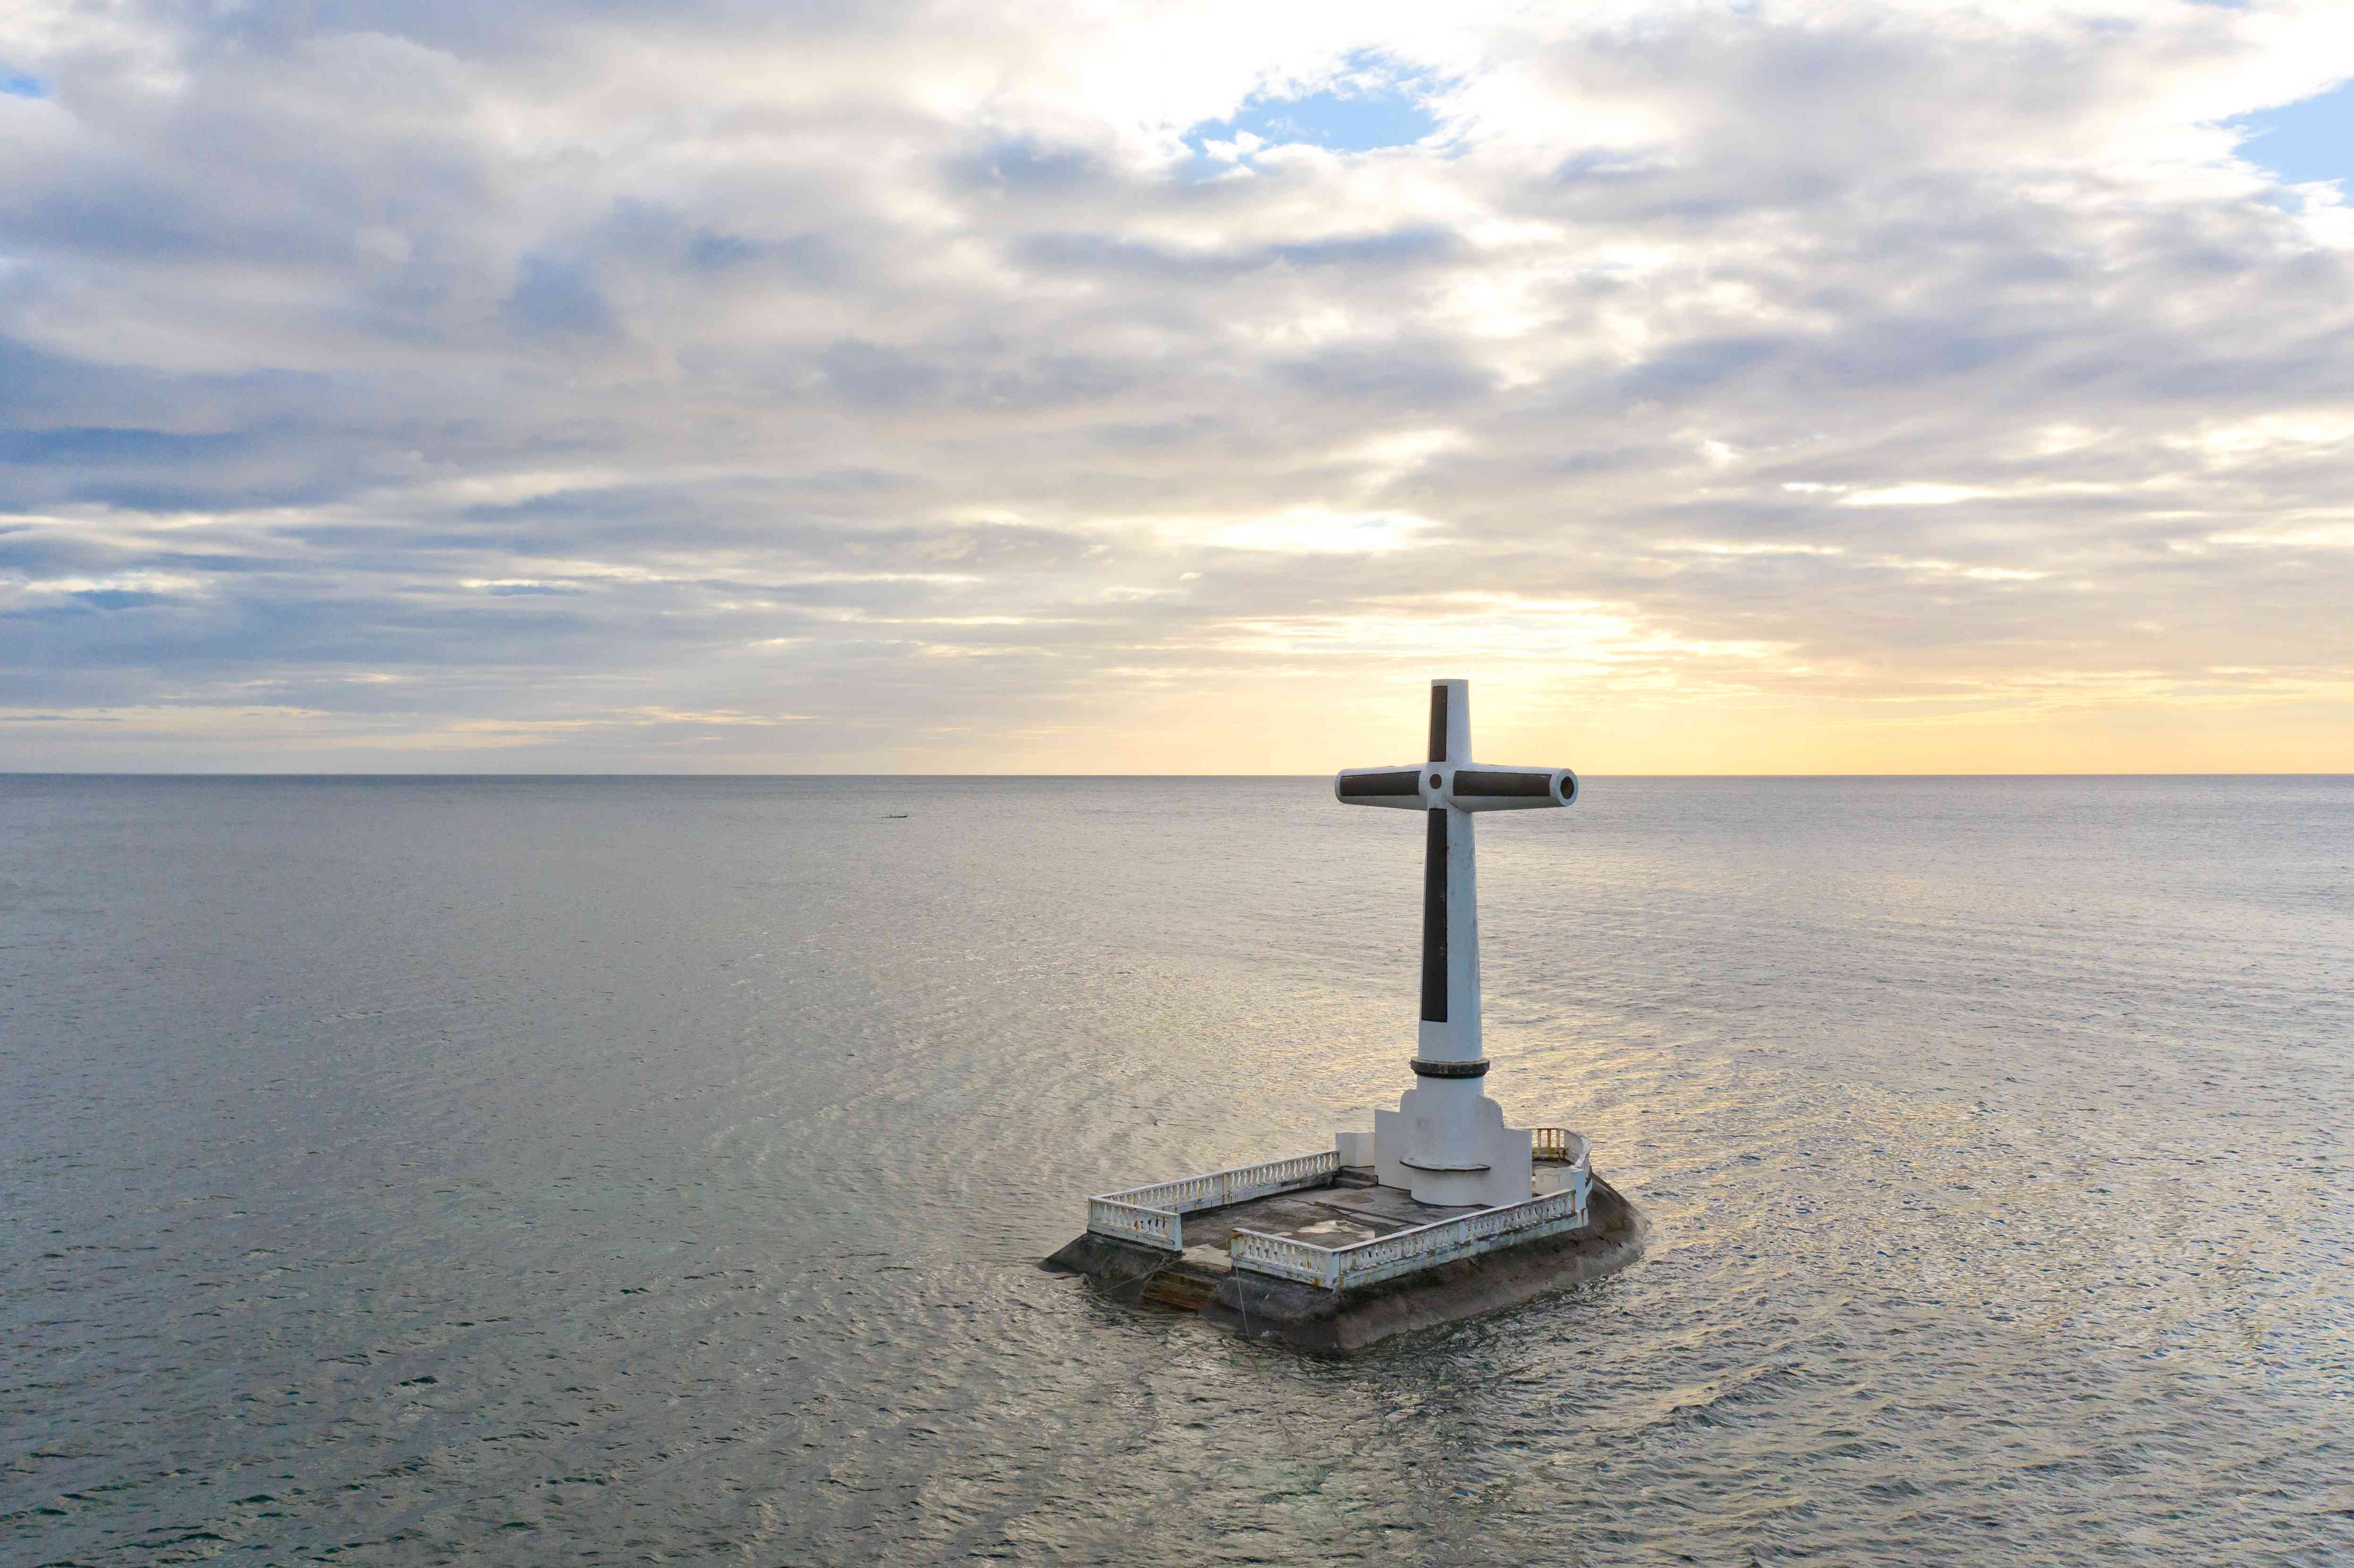 Catholic cross in a flooded cemetery in the sea near the island of Camiguin